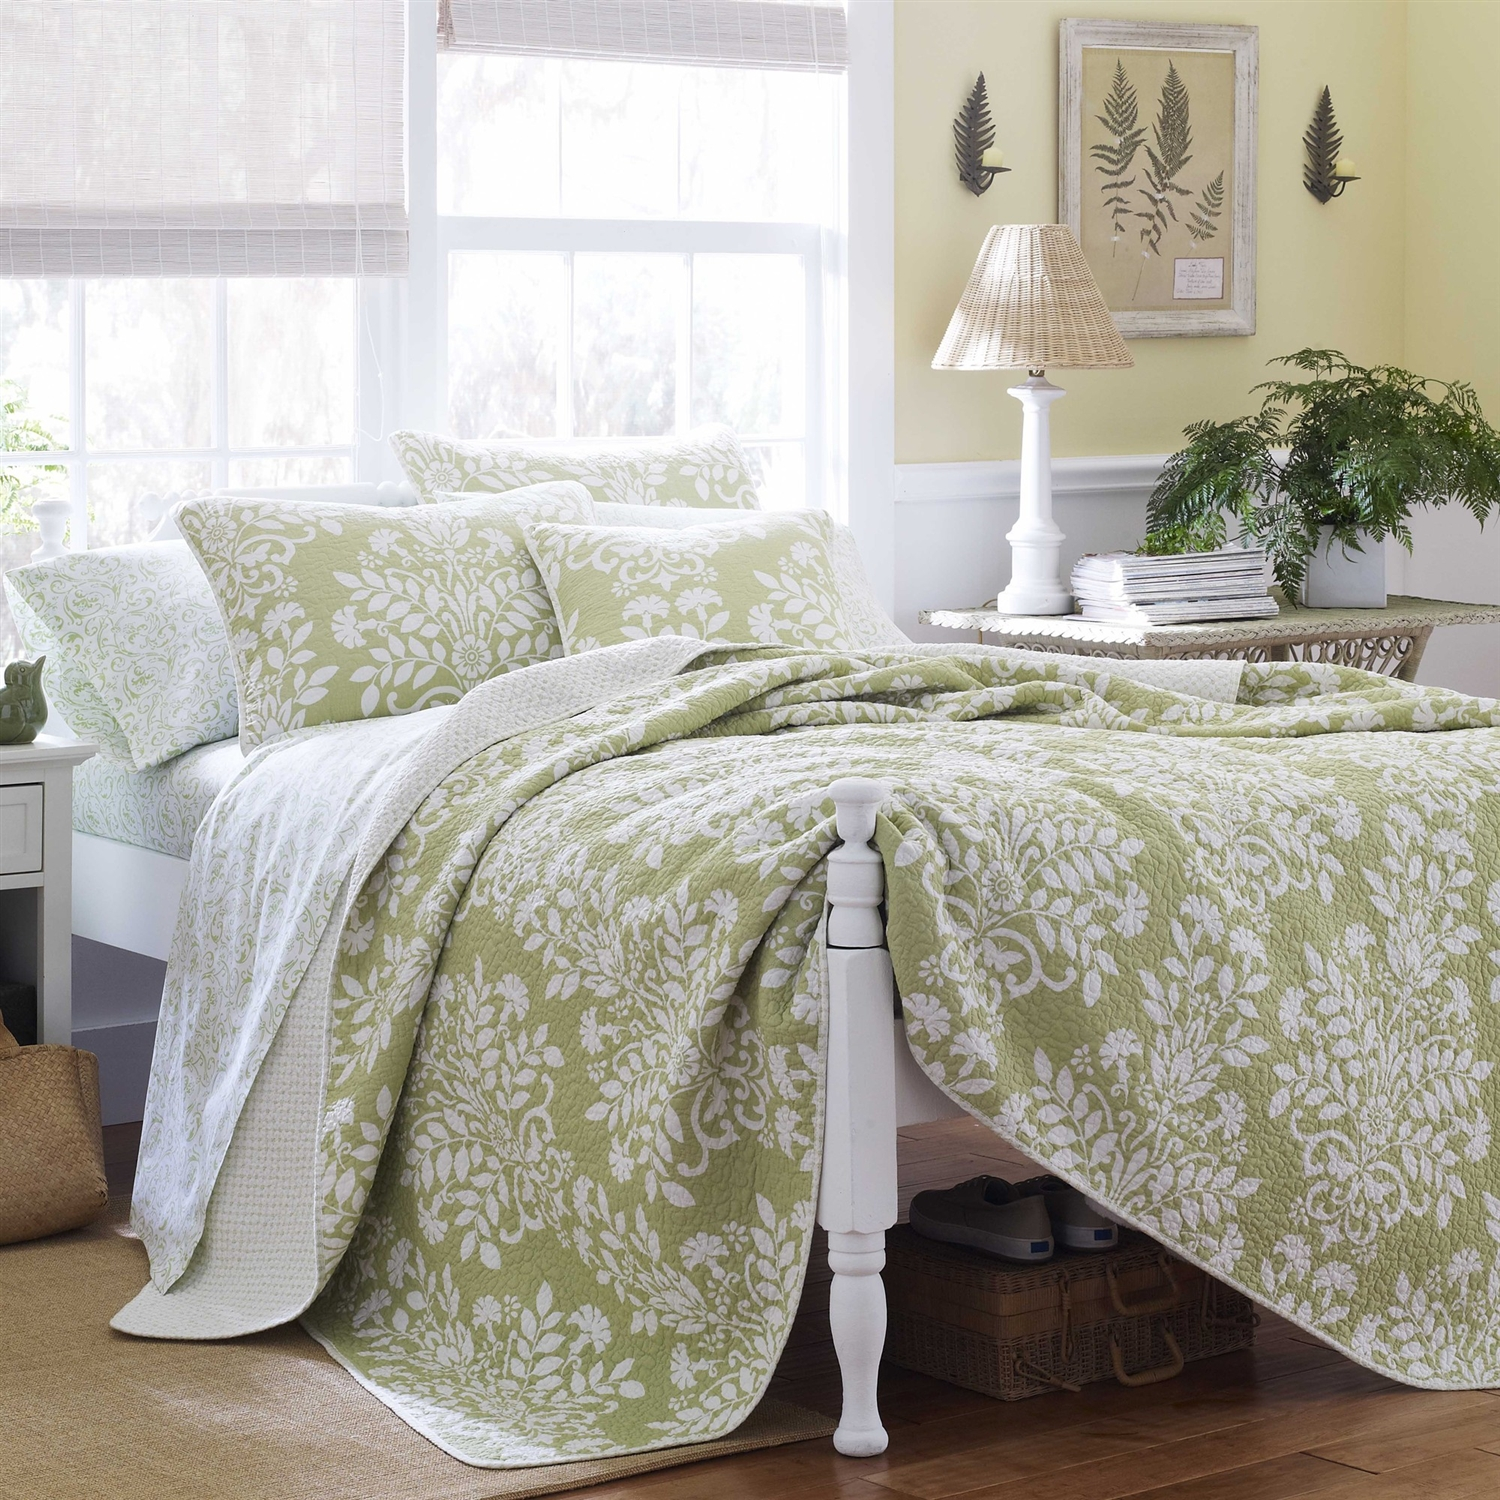 Full / Queen size 3-Piece Quilt Set 100% Cotton in Sage Green White Floral Pattern: FQSGA8981815 : This Full / Queen size 3-Piece Quilt Set 100% Cotton in Sage Green White Floral Pattern combines the splendor of damask with the timeless quality of quilting to create high style. The white floral damask runs in close vertical rows up a blue background. The print on the reverse offers a change of pace with a small geometric design. It's perfect as an addition to existing bedding or on its own. Gender: Female; Life Stage: Adult; Reversible: Yes; Textured: Yes; Cleaning Method: Machine washable; Country of Manufacture: China.